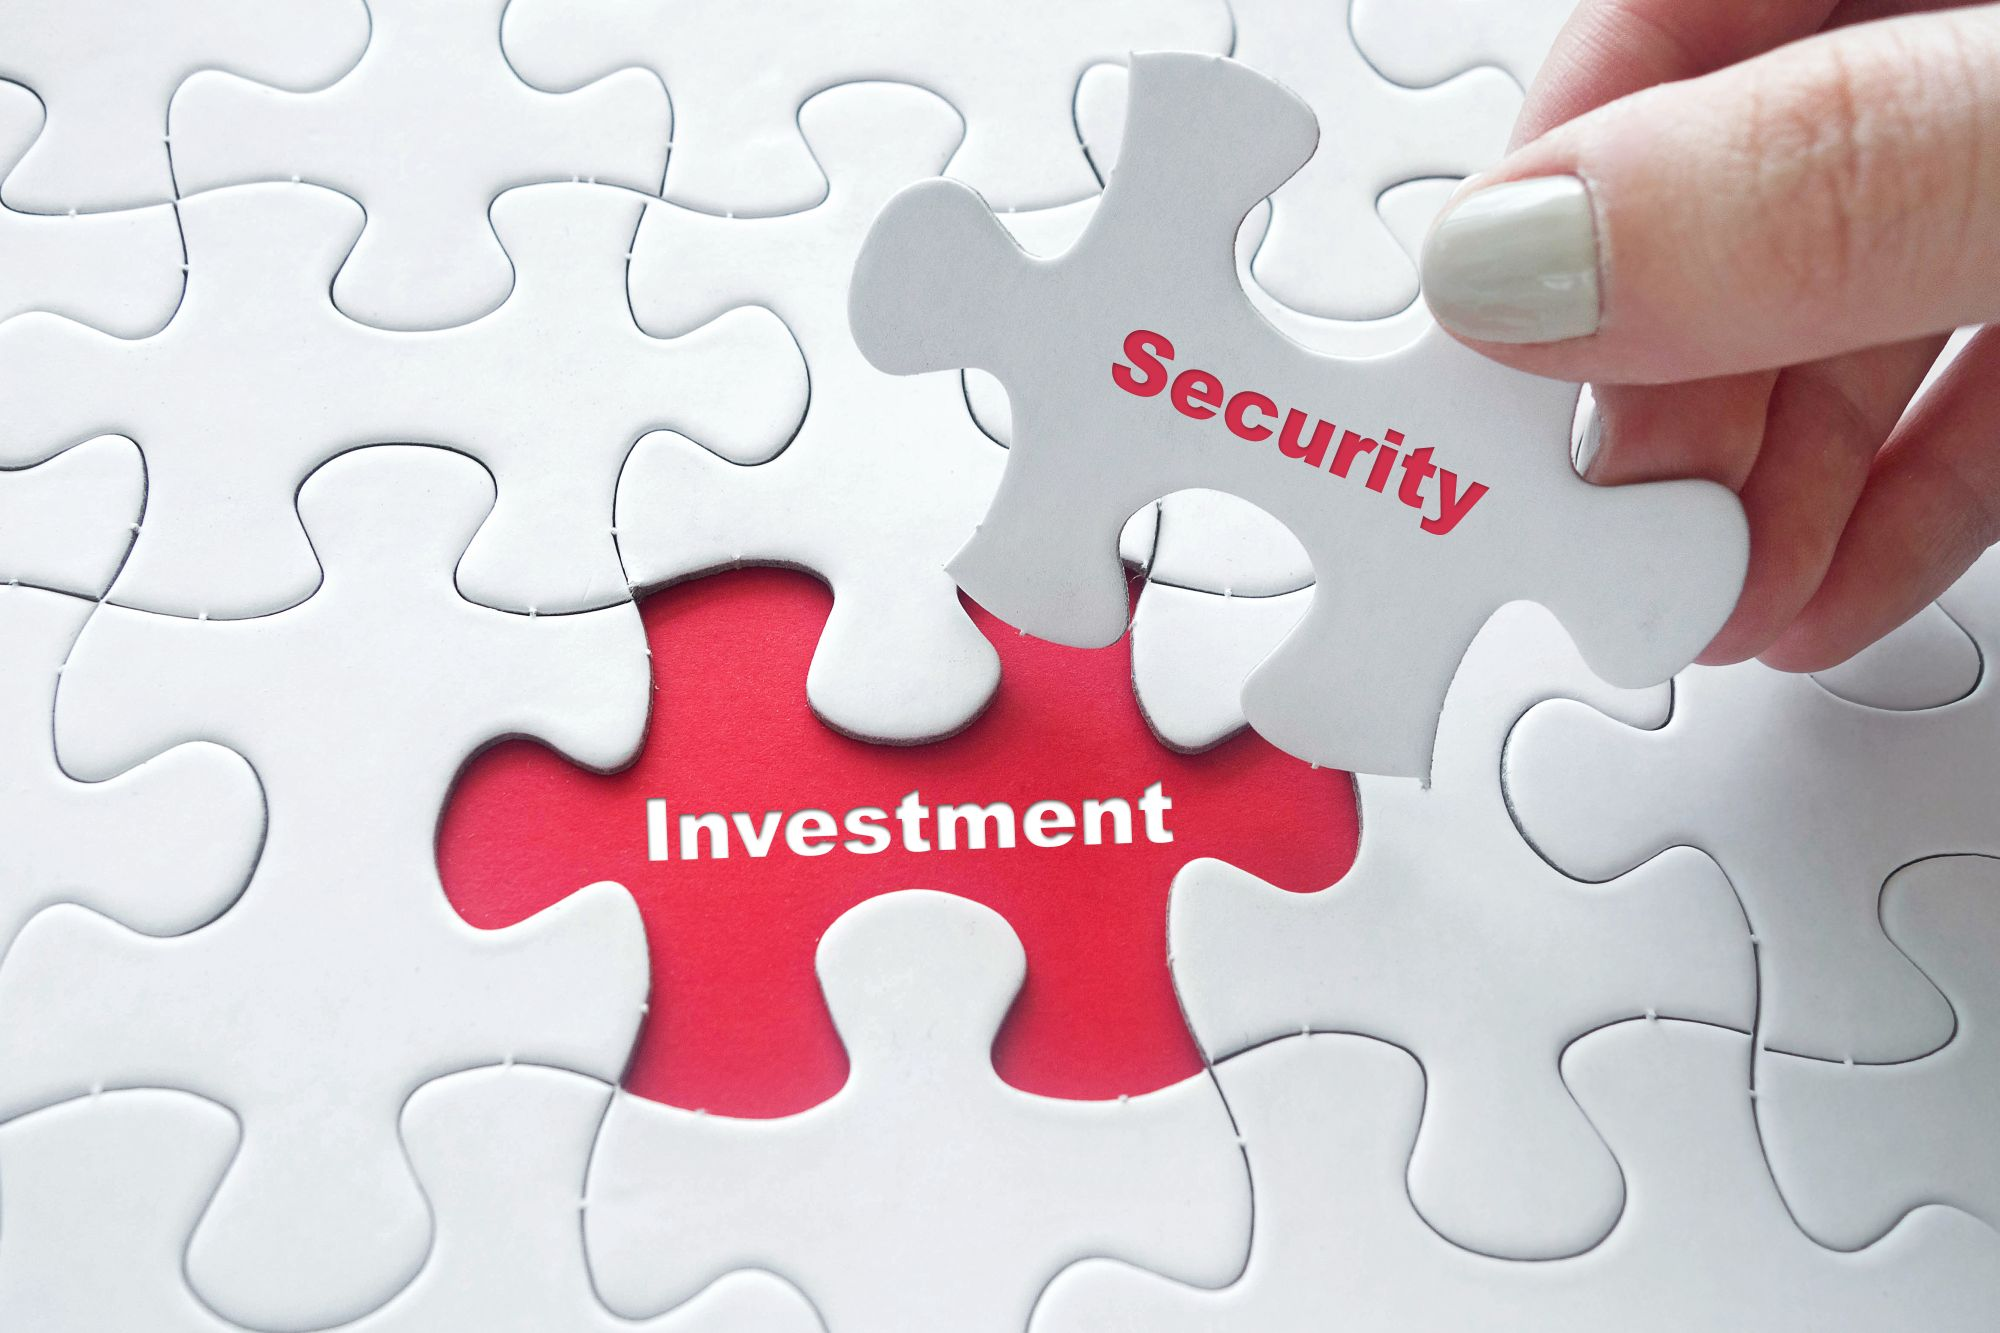 investment-securities